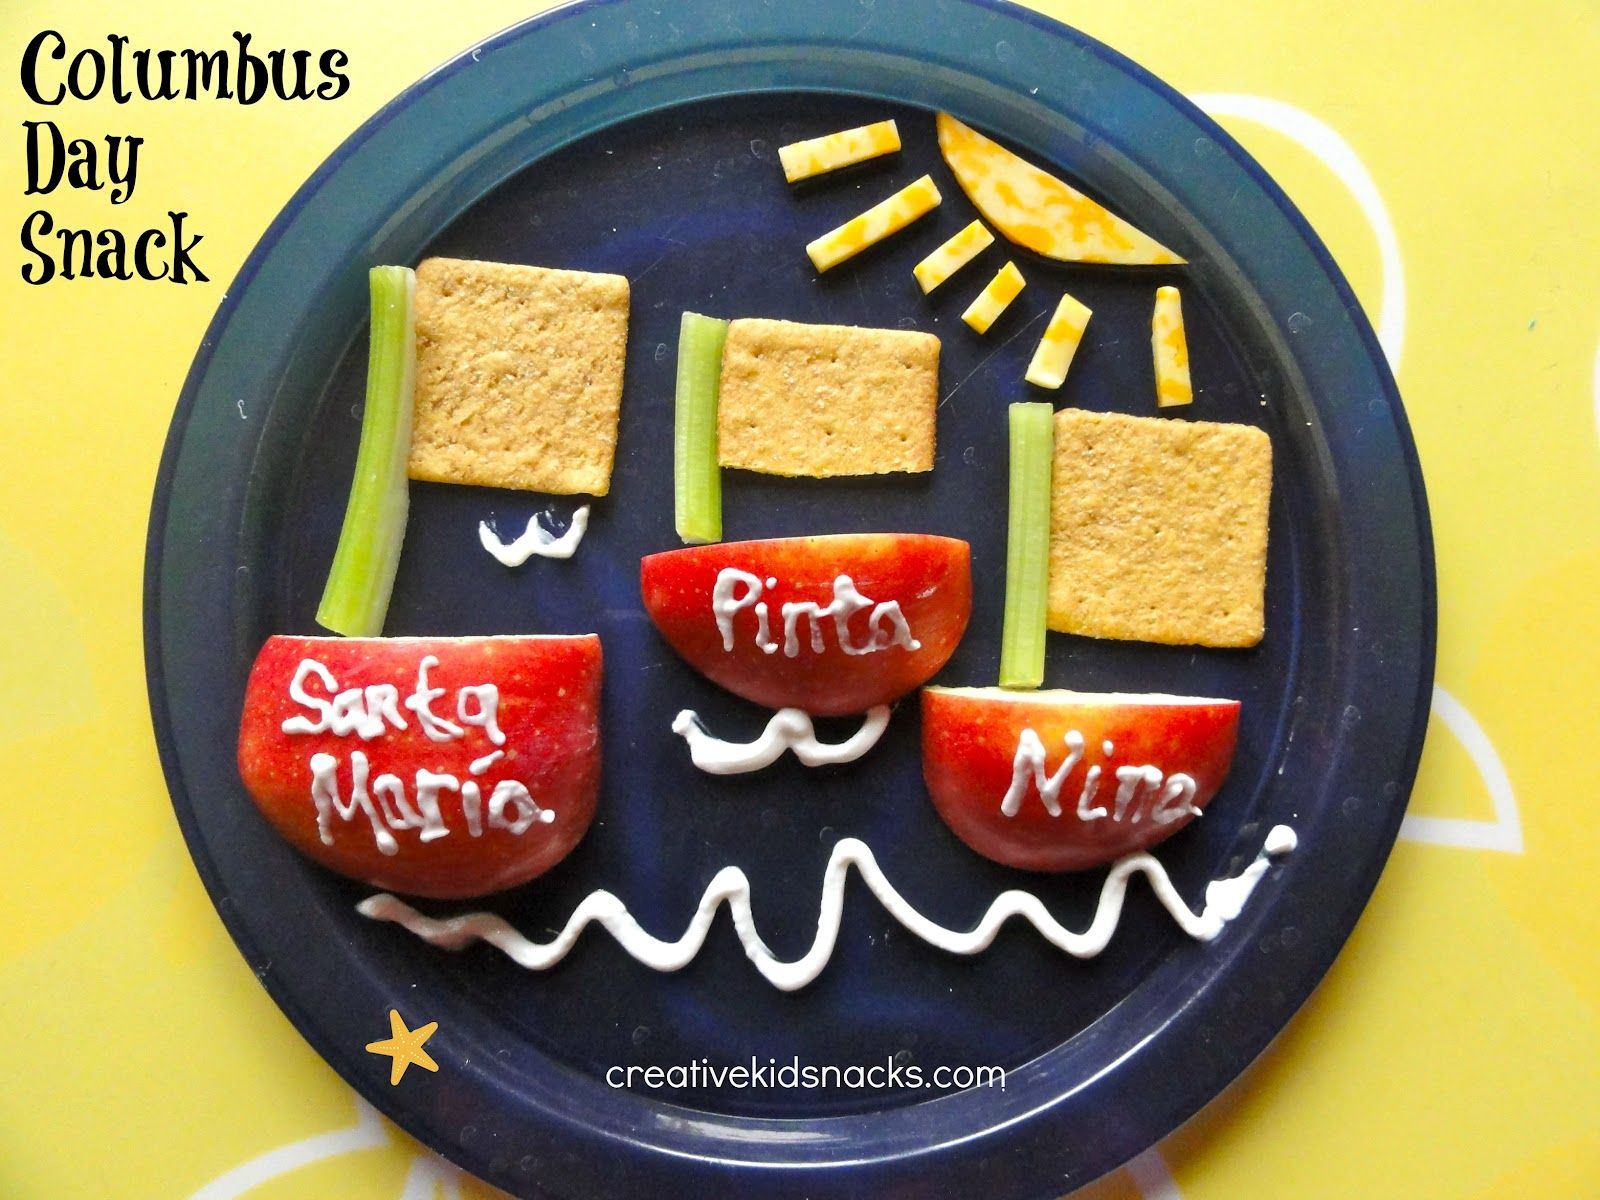 Kitchen Fun Creative Kid Snacks Columbus Day Snack Creative Kids Snacks Kids Snacks Columbus Day